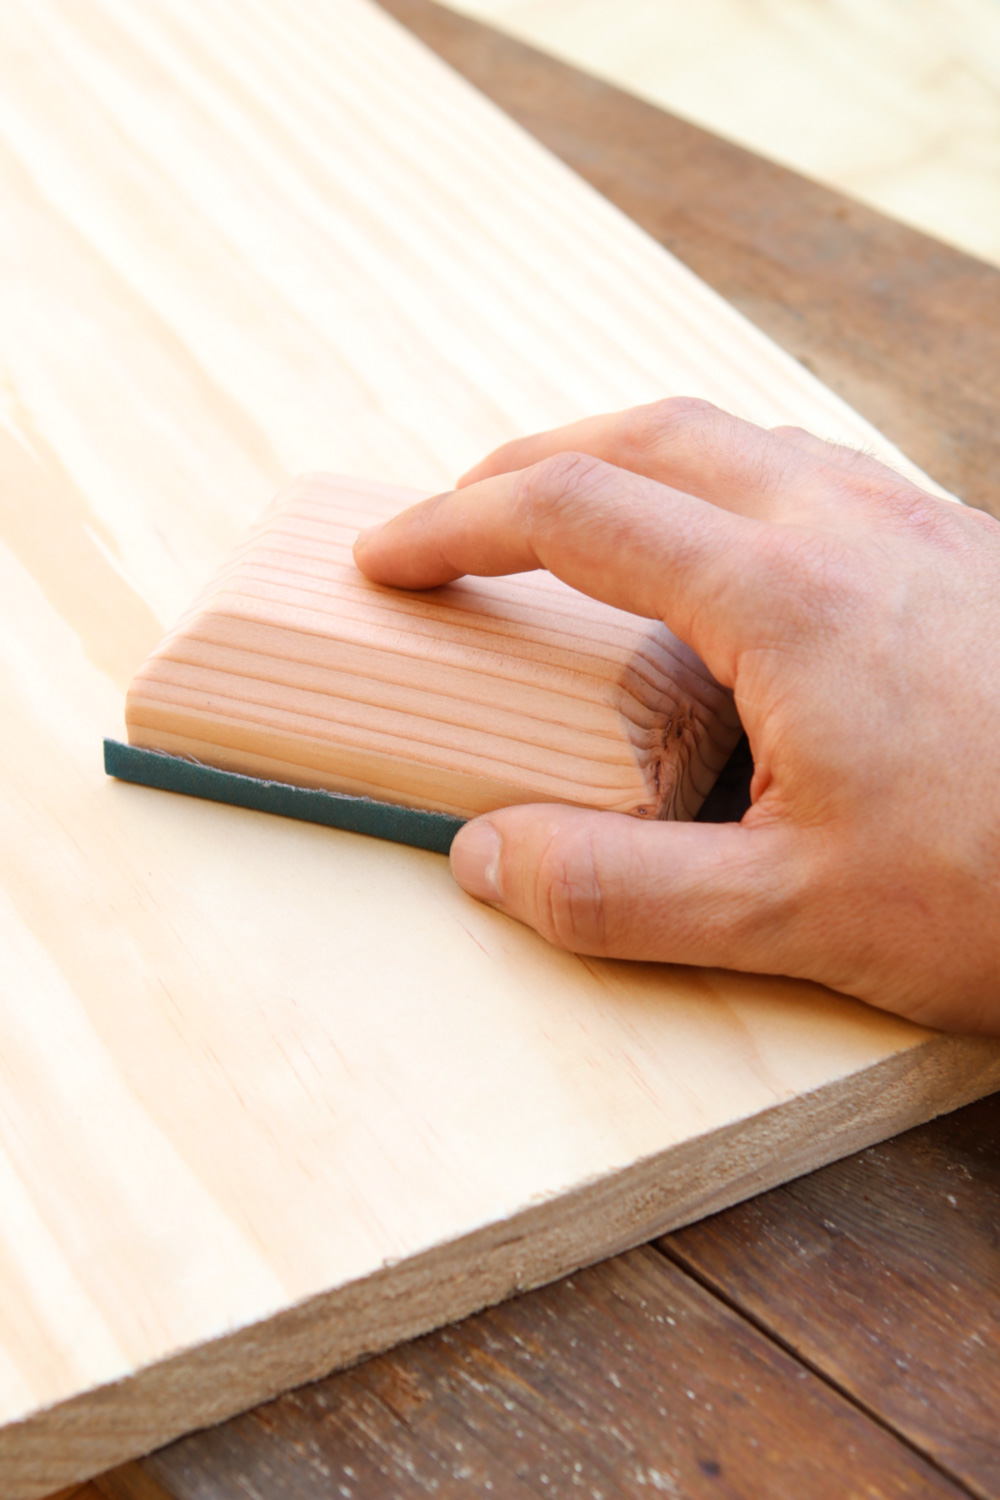 how to make the ultimate sanding block | man made diy